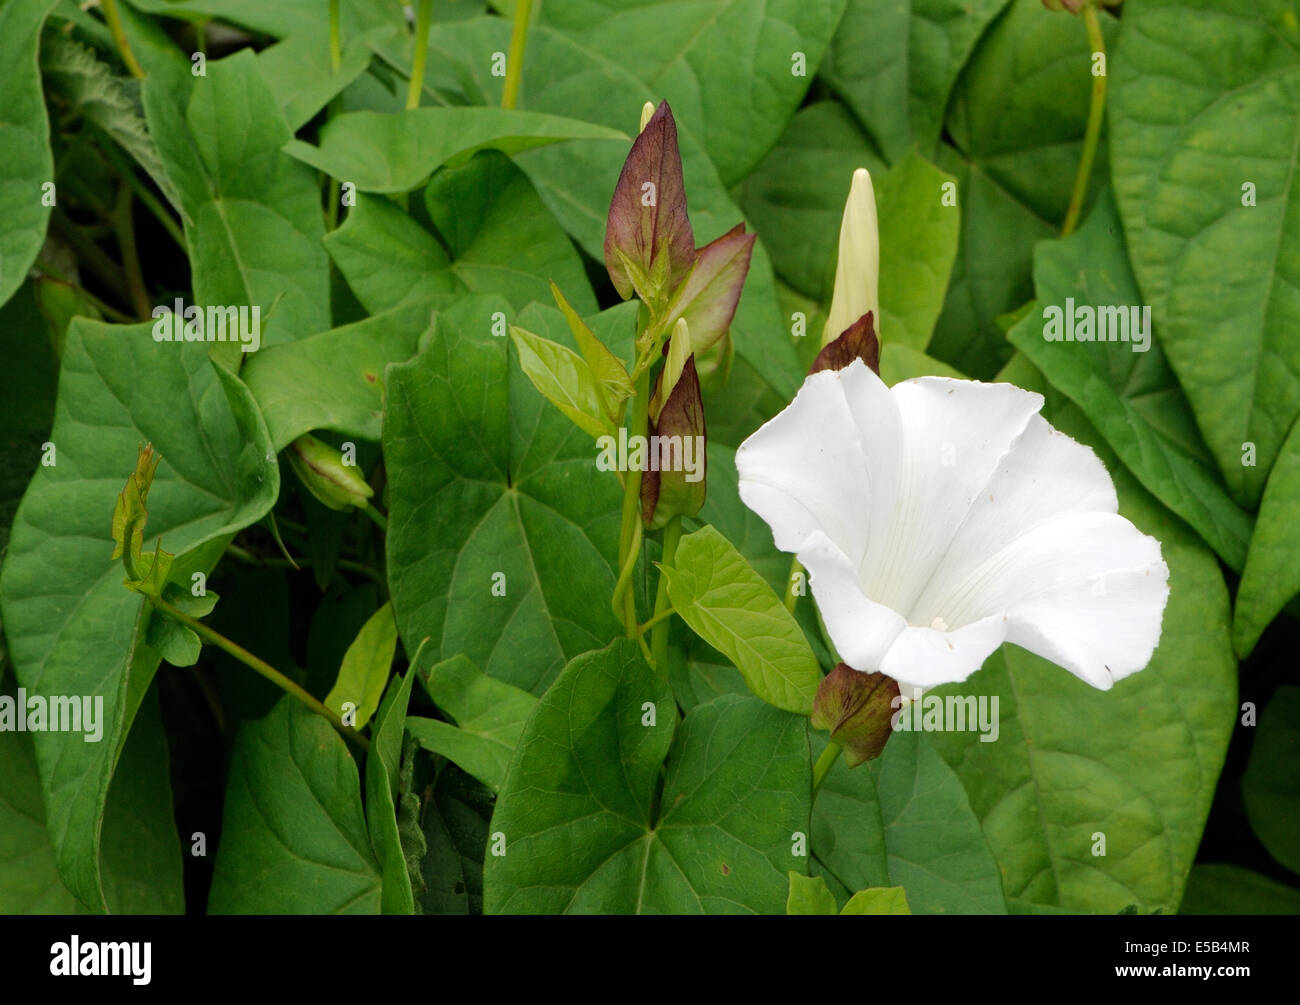 Trumpet shaped flower stock photos trumpet shaped flower stock the white trumpet shaped flower buds and leaves of great bindweed calystegia silvatica mightylinksfo